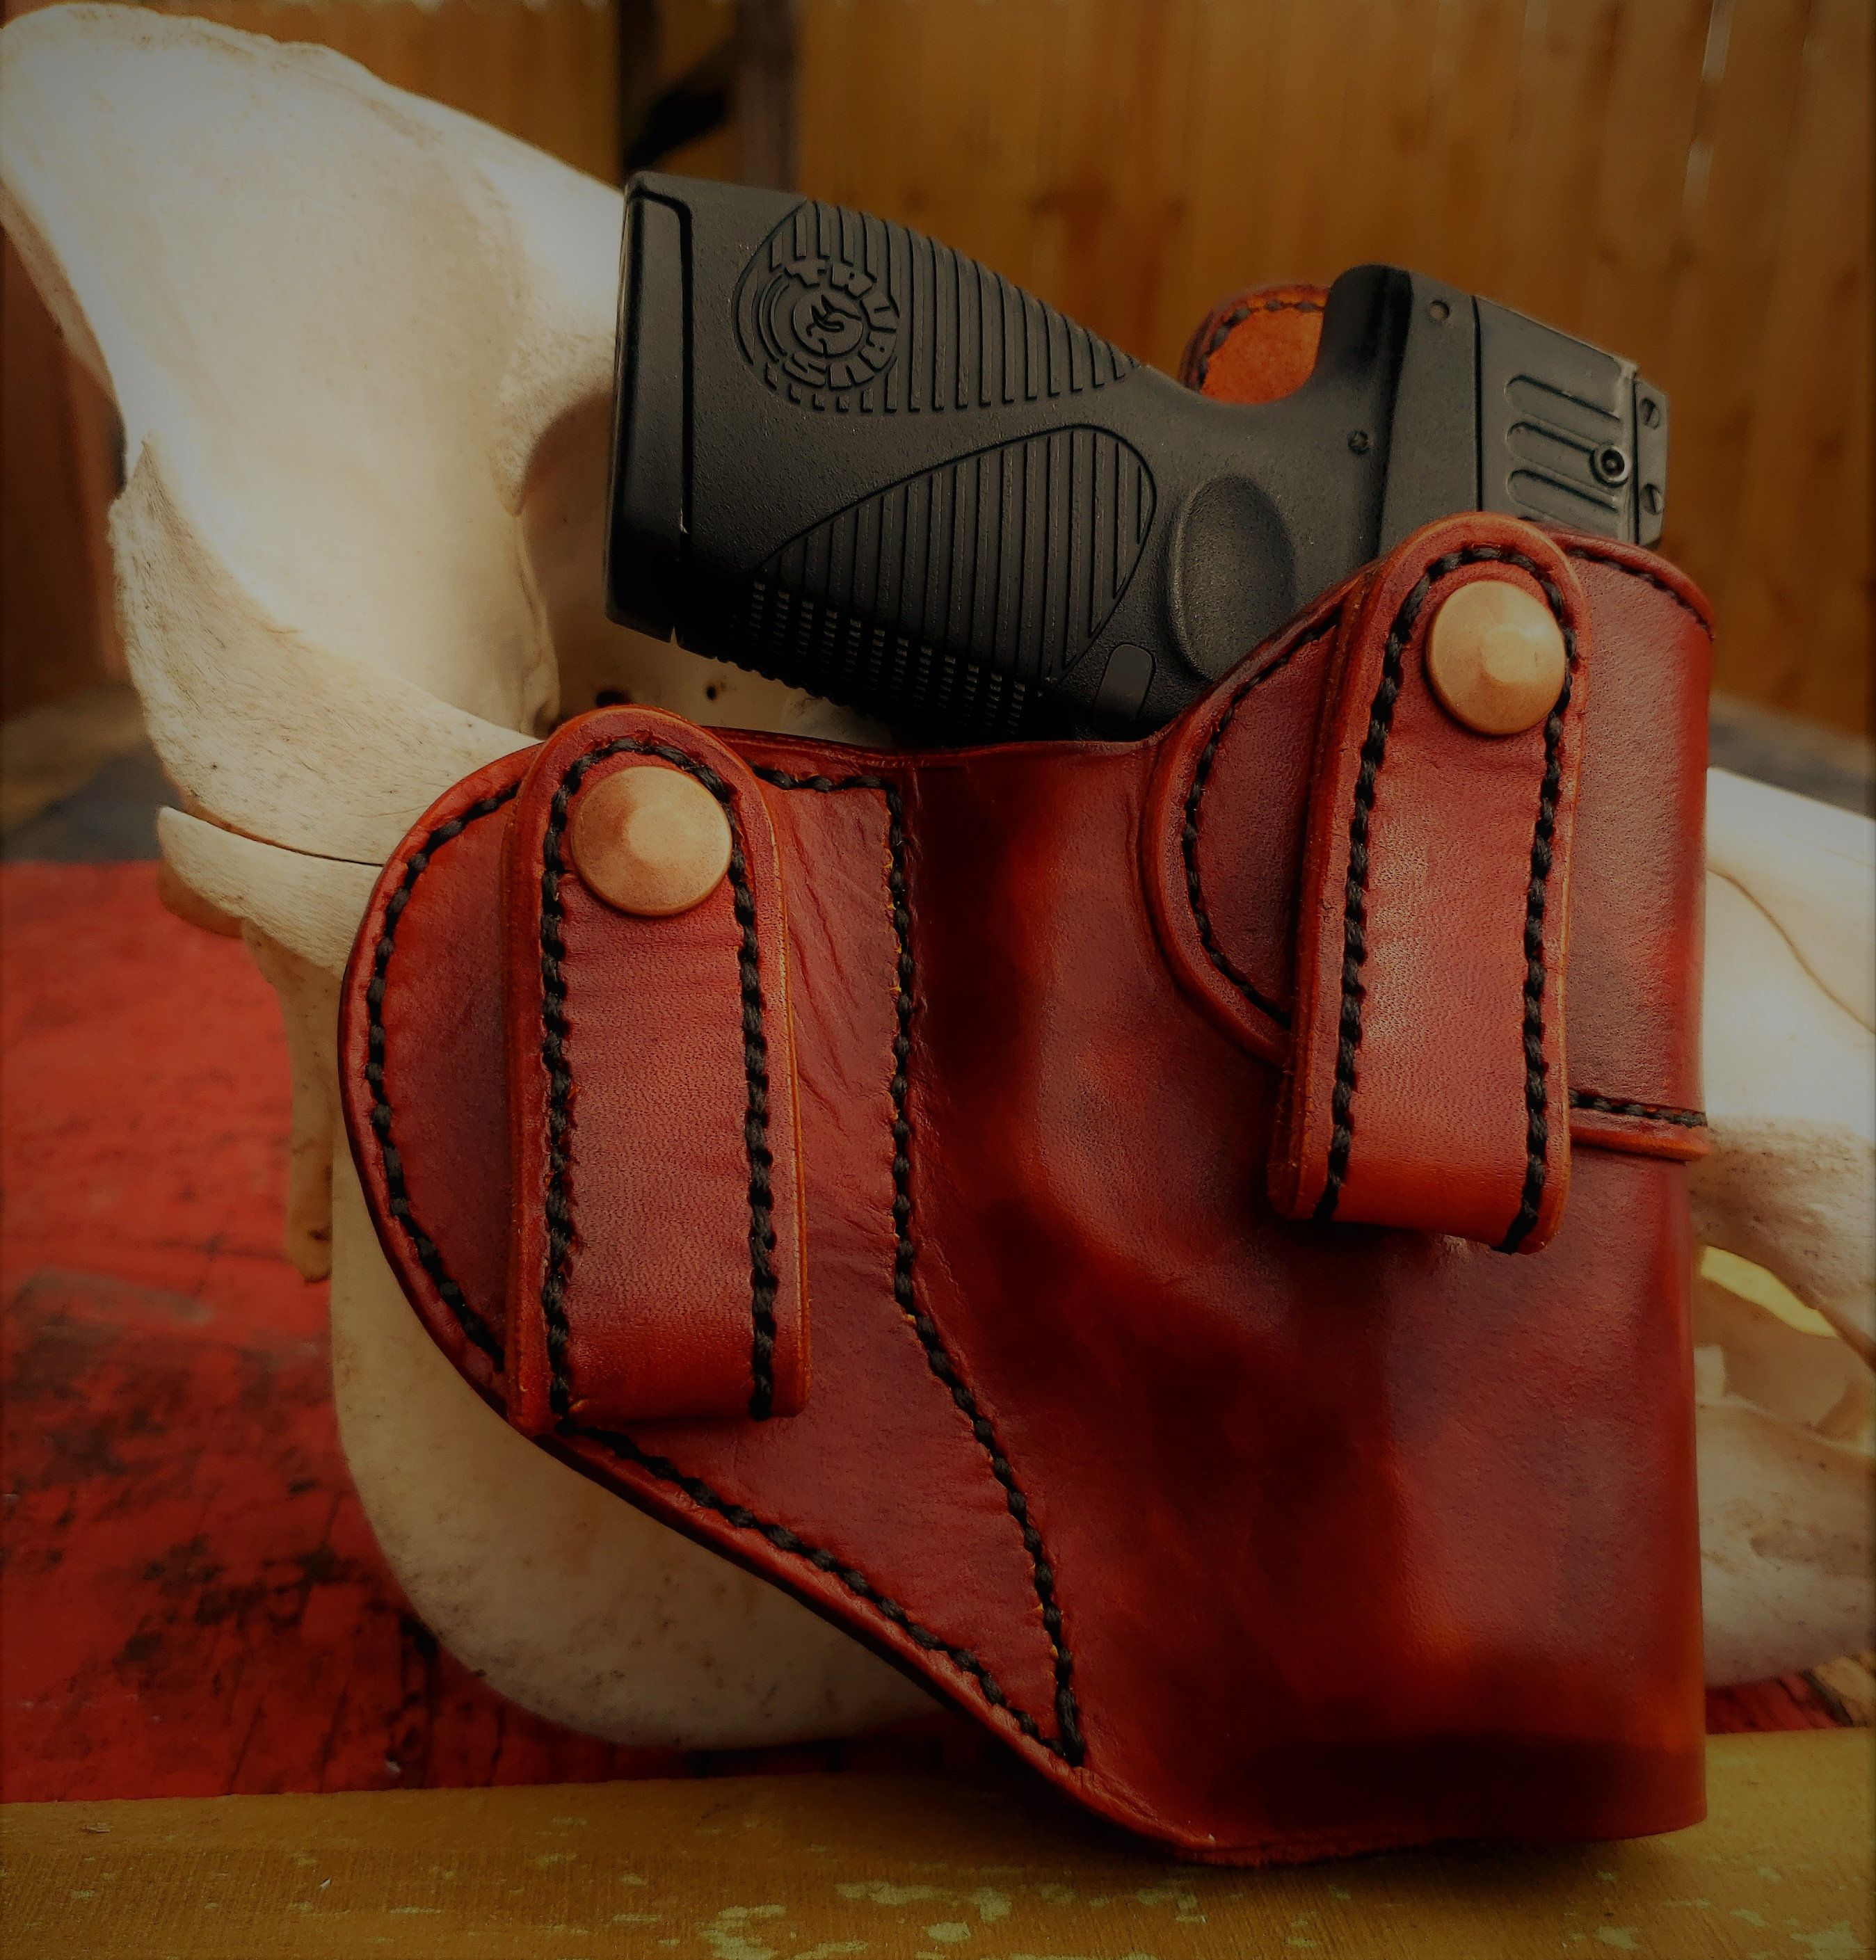 The HOSS IWB Leather Holster, CCW Holster by